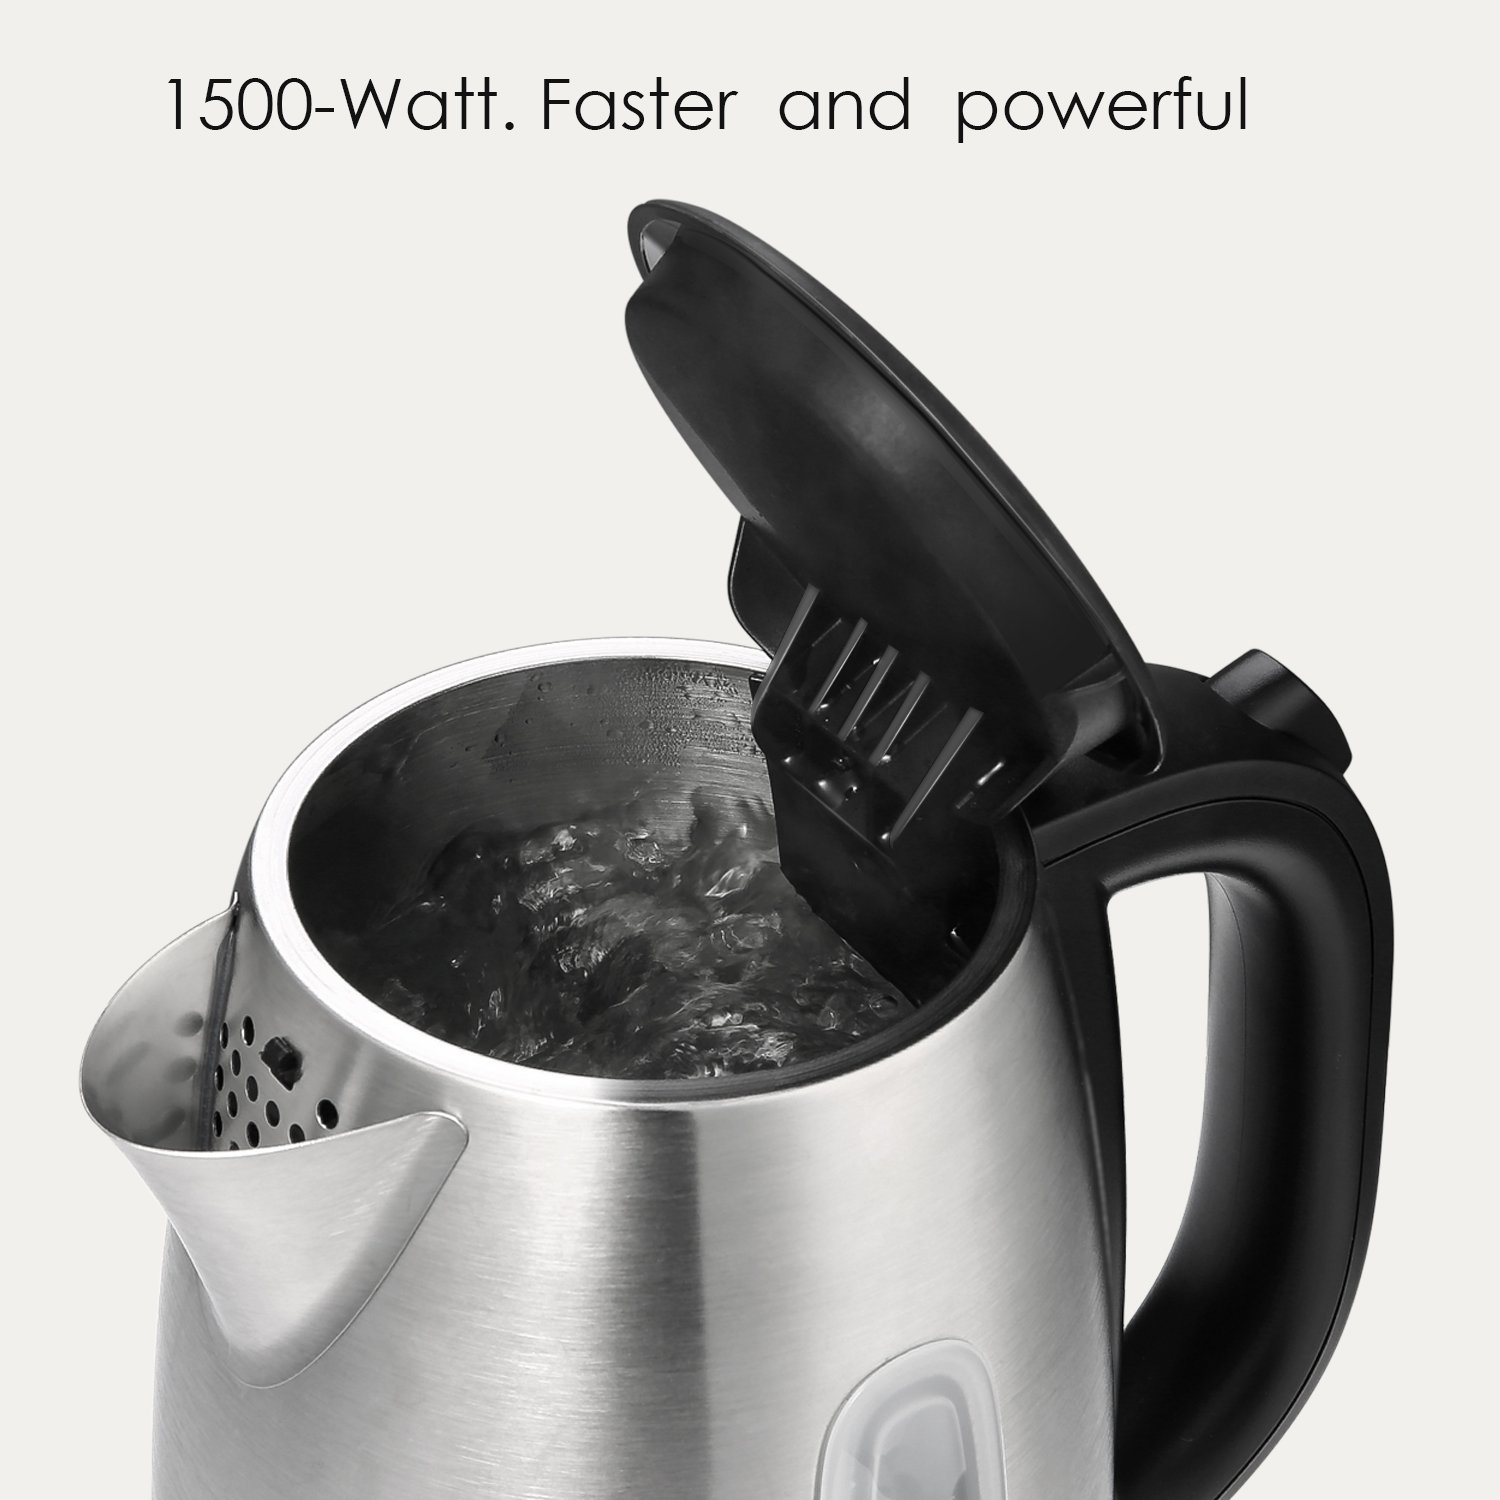 Electric Kettle 1.7L Stainless Steel Tea Kettle with British Strix Control, 1500W Fast Boiling Water Kettle, Hot Water Kettle Electric with Auto Shut-Off, BPA-Free By Aicok by AICOK (Image #3)